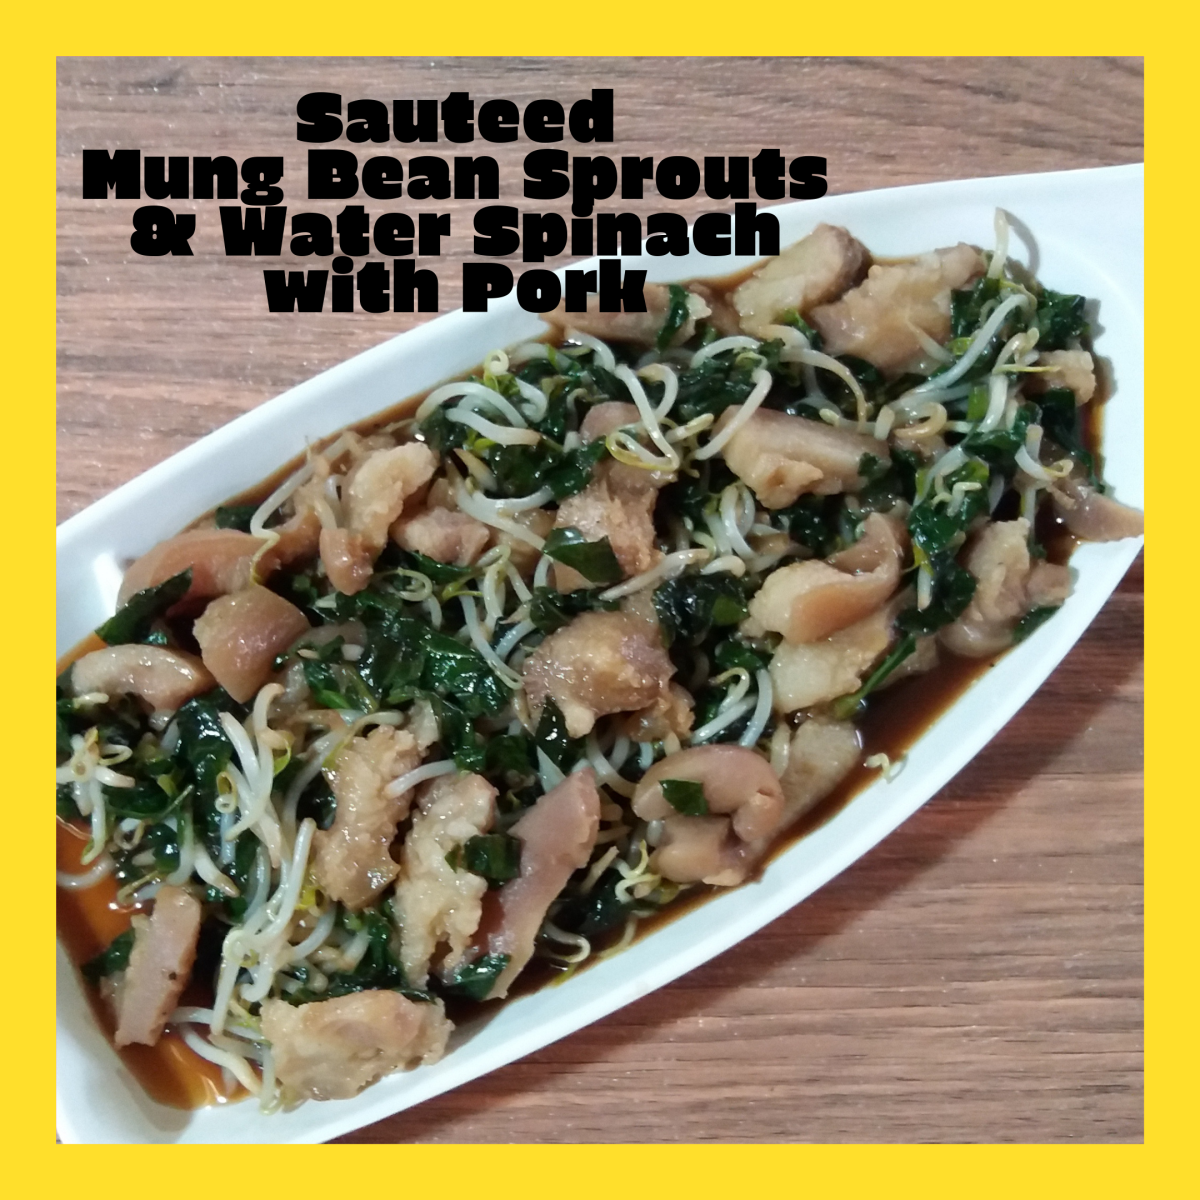 Learn how to make sauteed mung bean sprouts and water spinach with pork